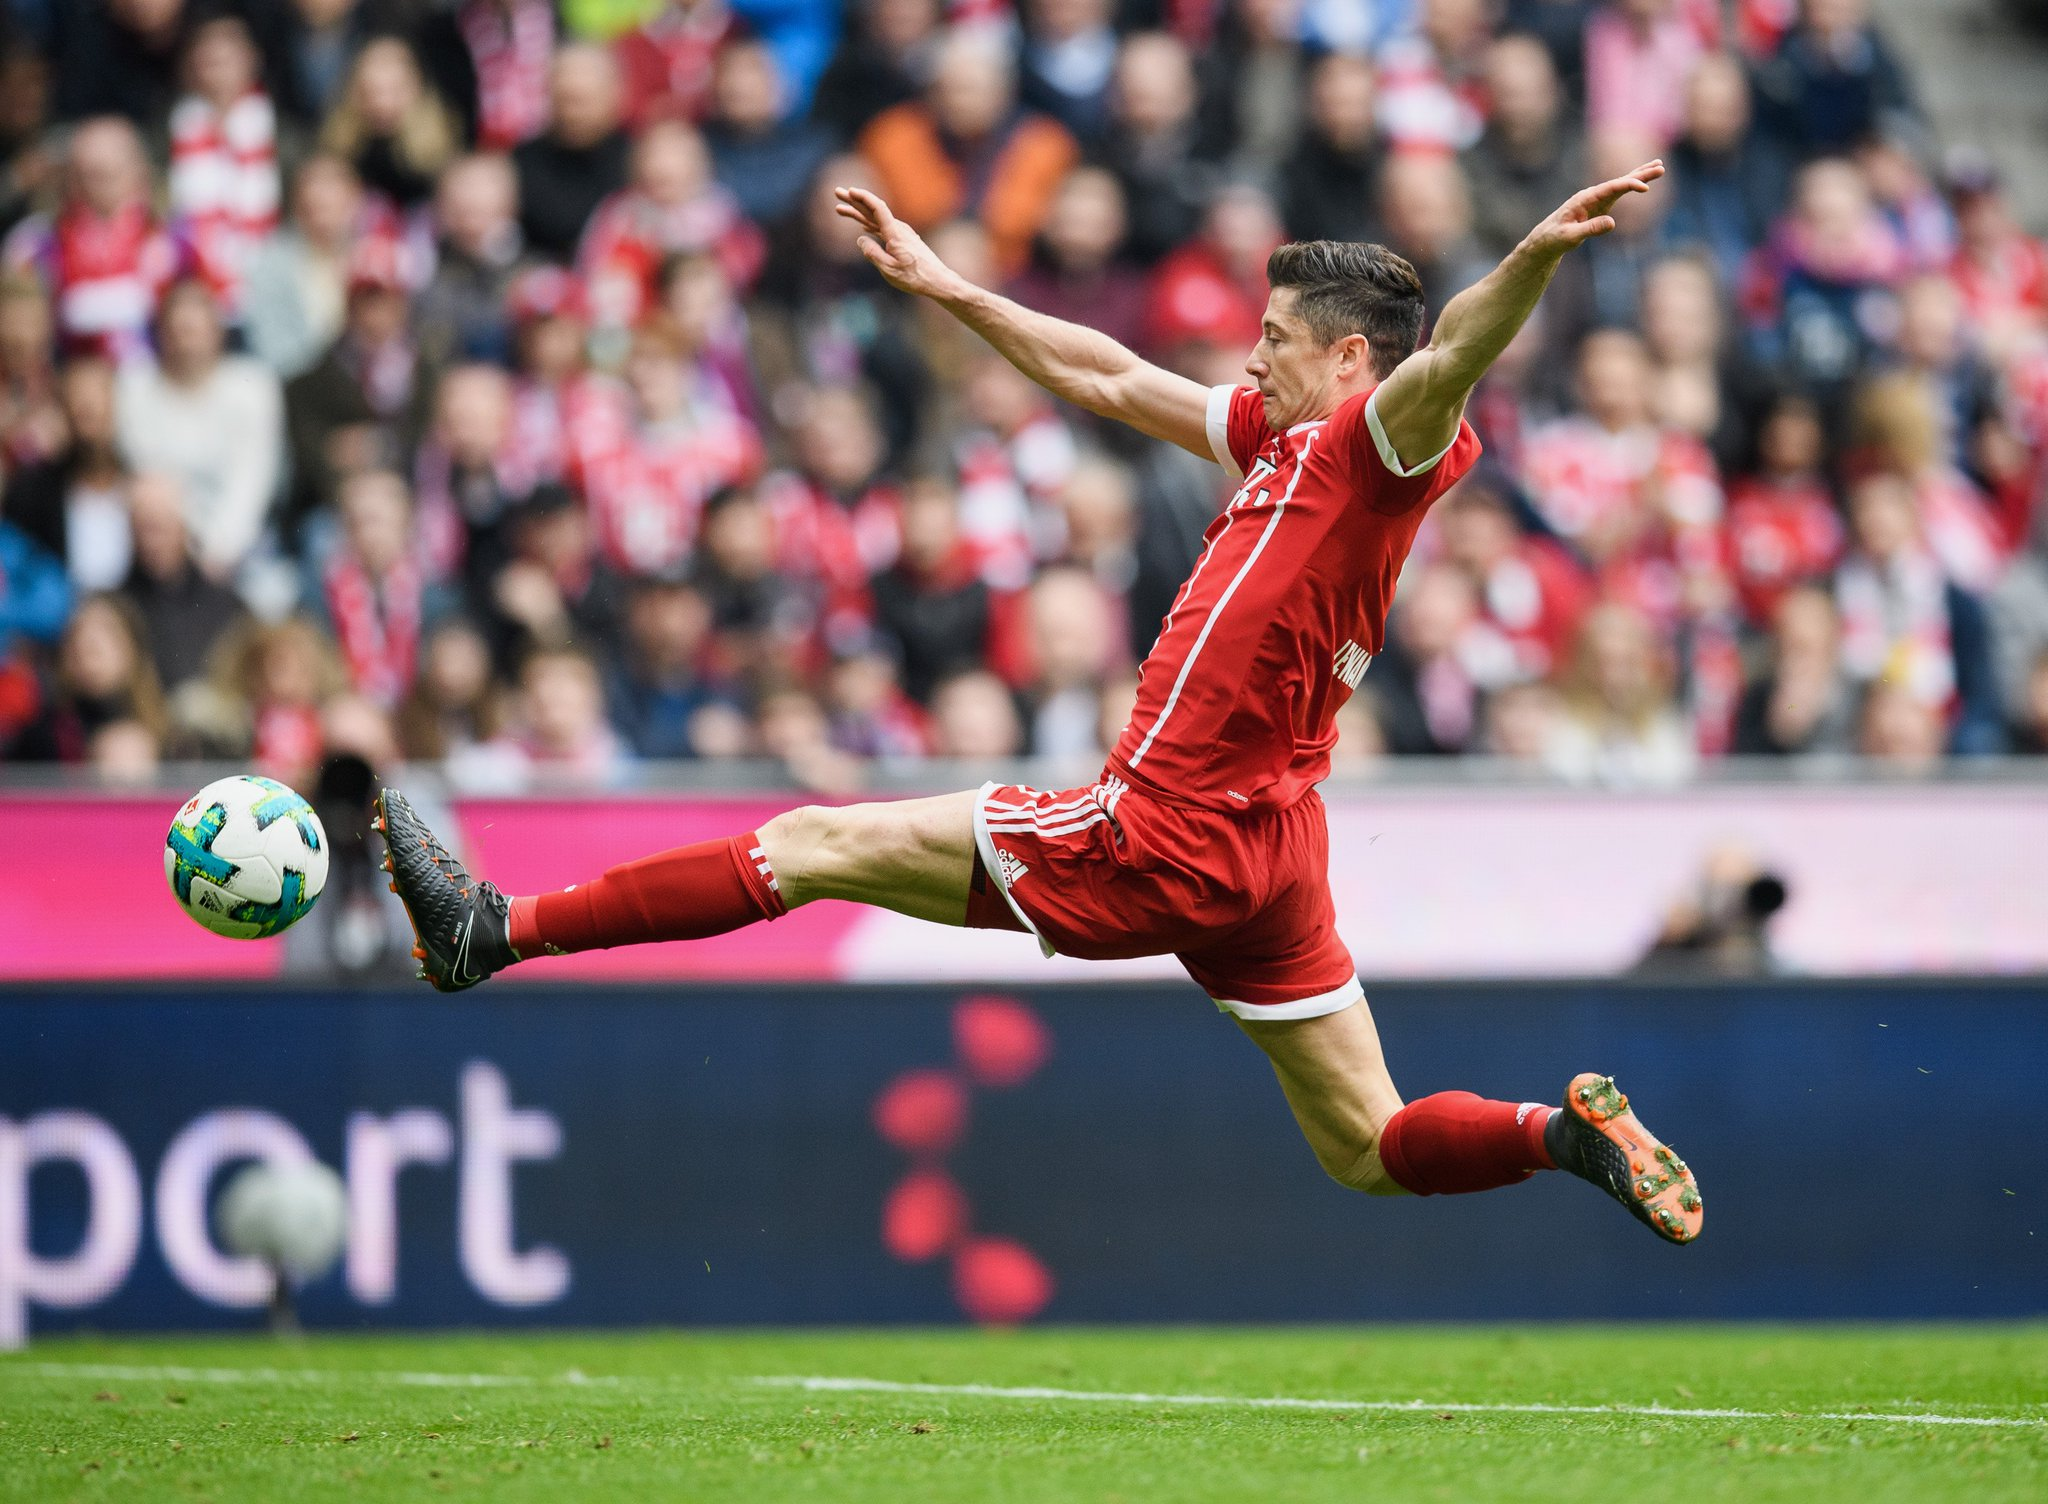 Bayern Munich 6-0 Hamburger SV Highlights